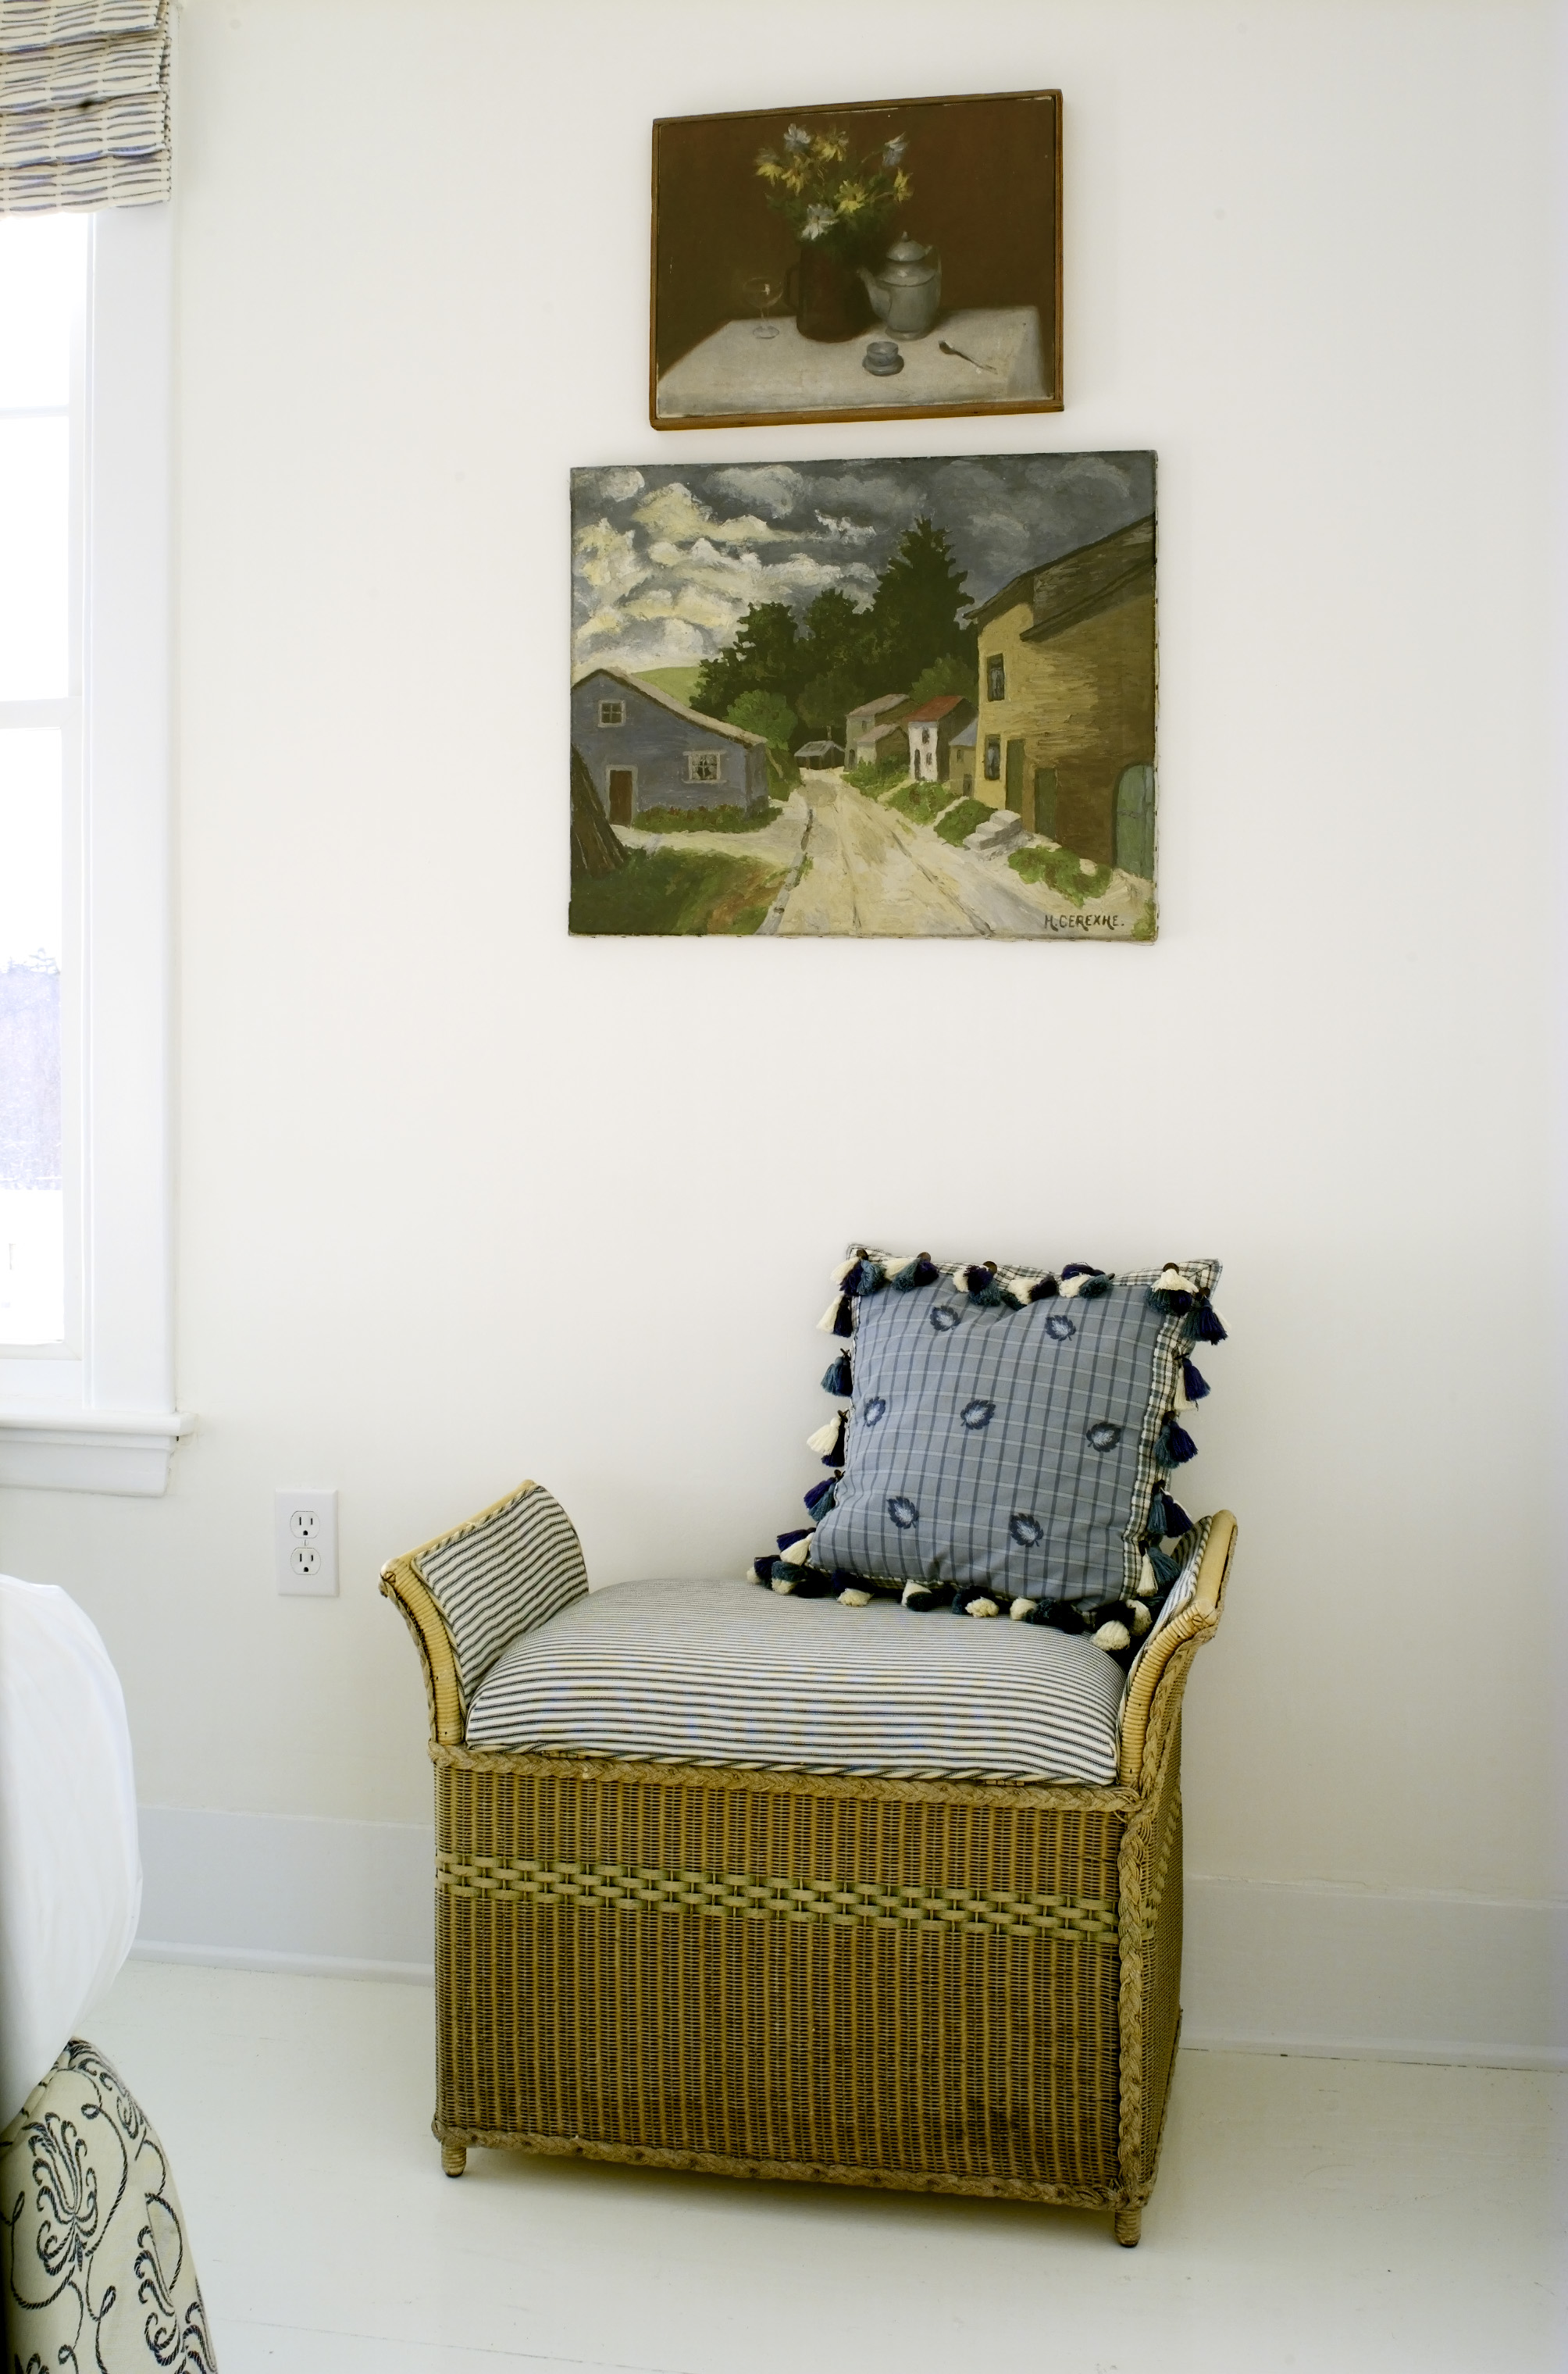 20031216.Chebeague.BlueBedroomWicker.jpg